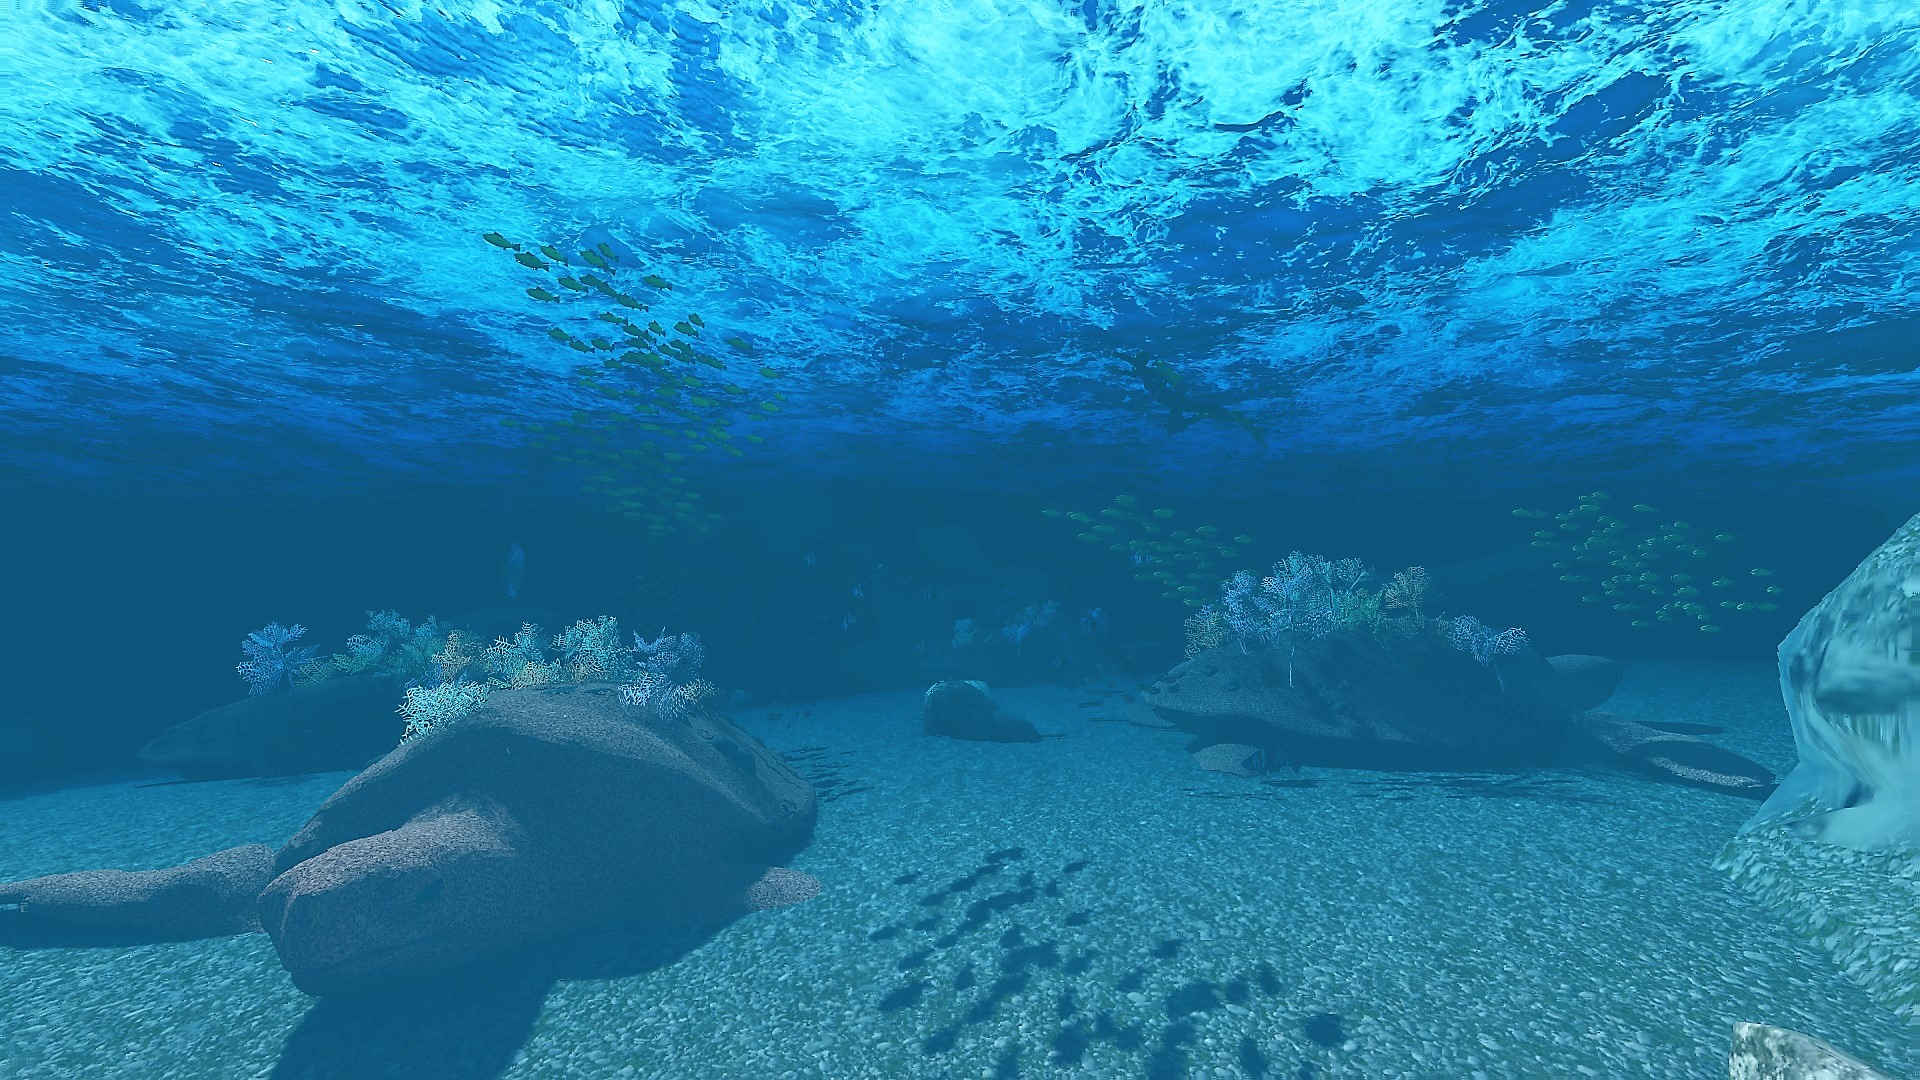 Microfragmentation domes in reef